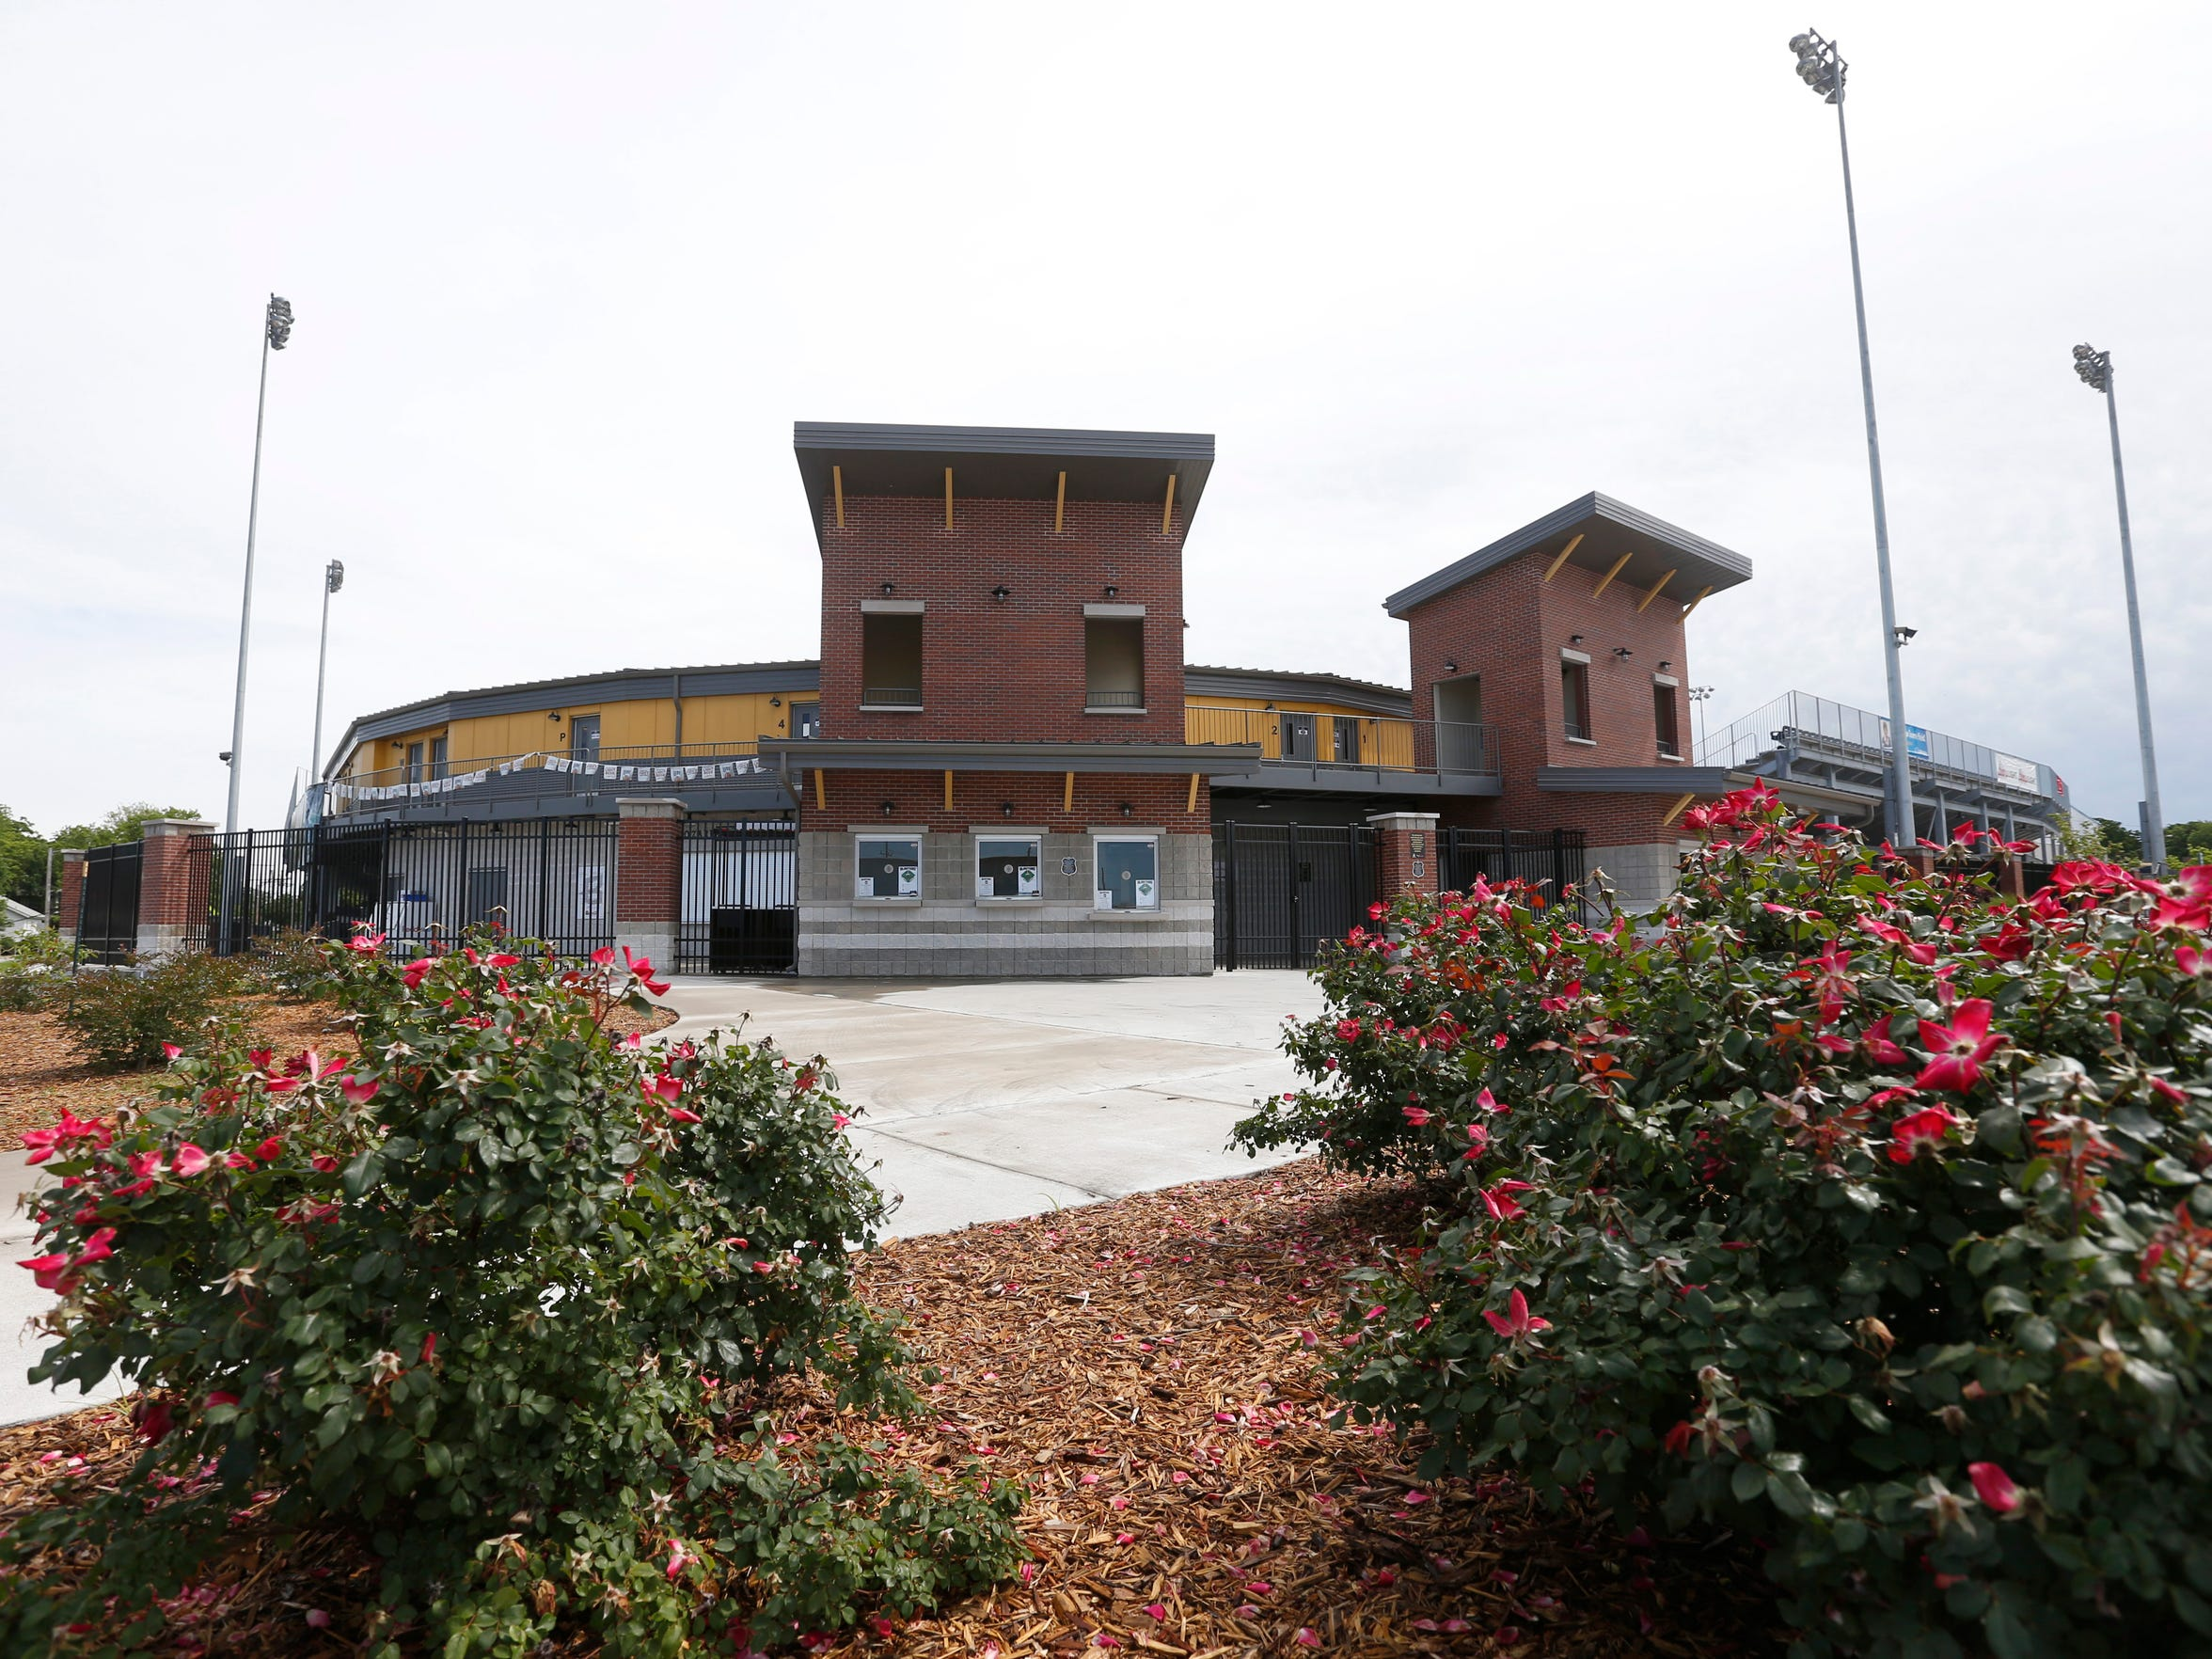 Wallace Bajjali proposed a new $55 million event venue and sports complex for Joplin. That didn't happen, but the city was able to renovate historic Joe Becker Stadium, which is now the home of the Joplin Blasters, an independent baseball team.